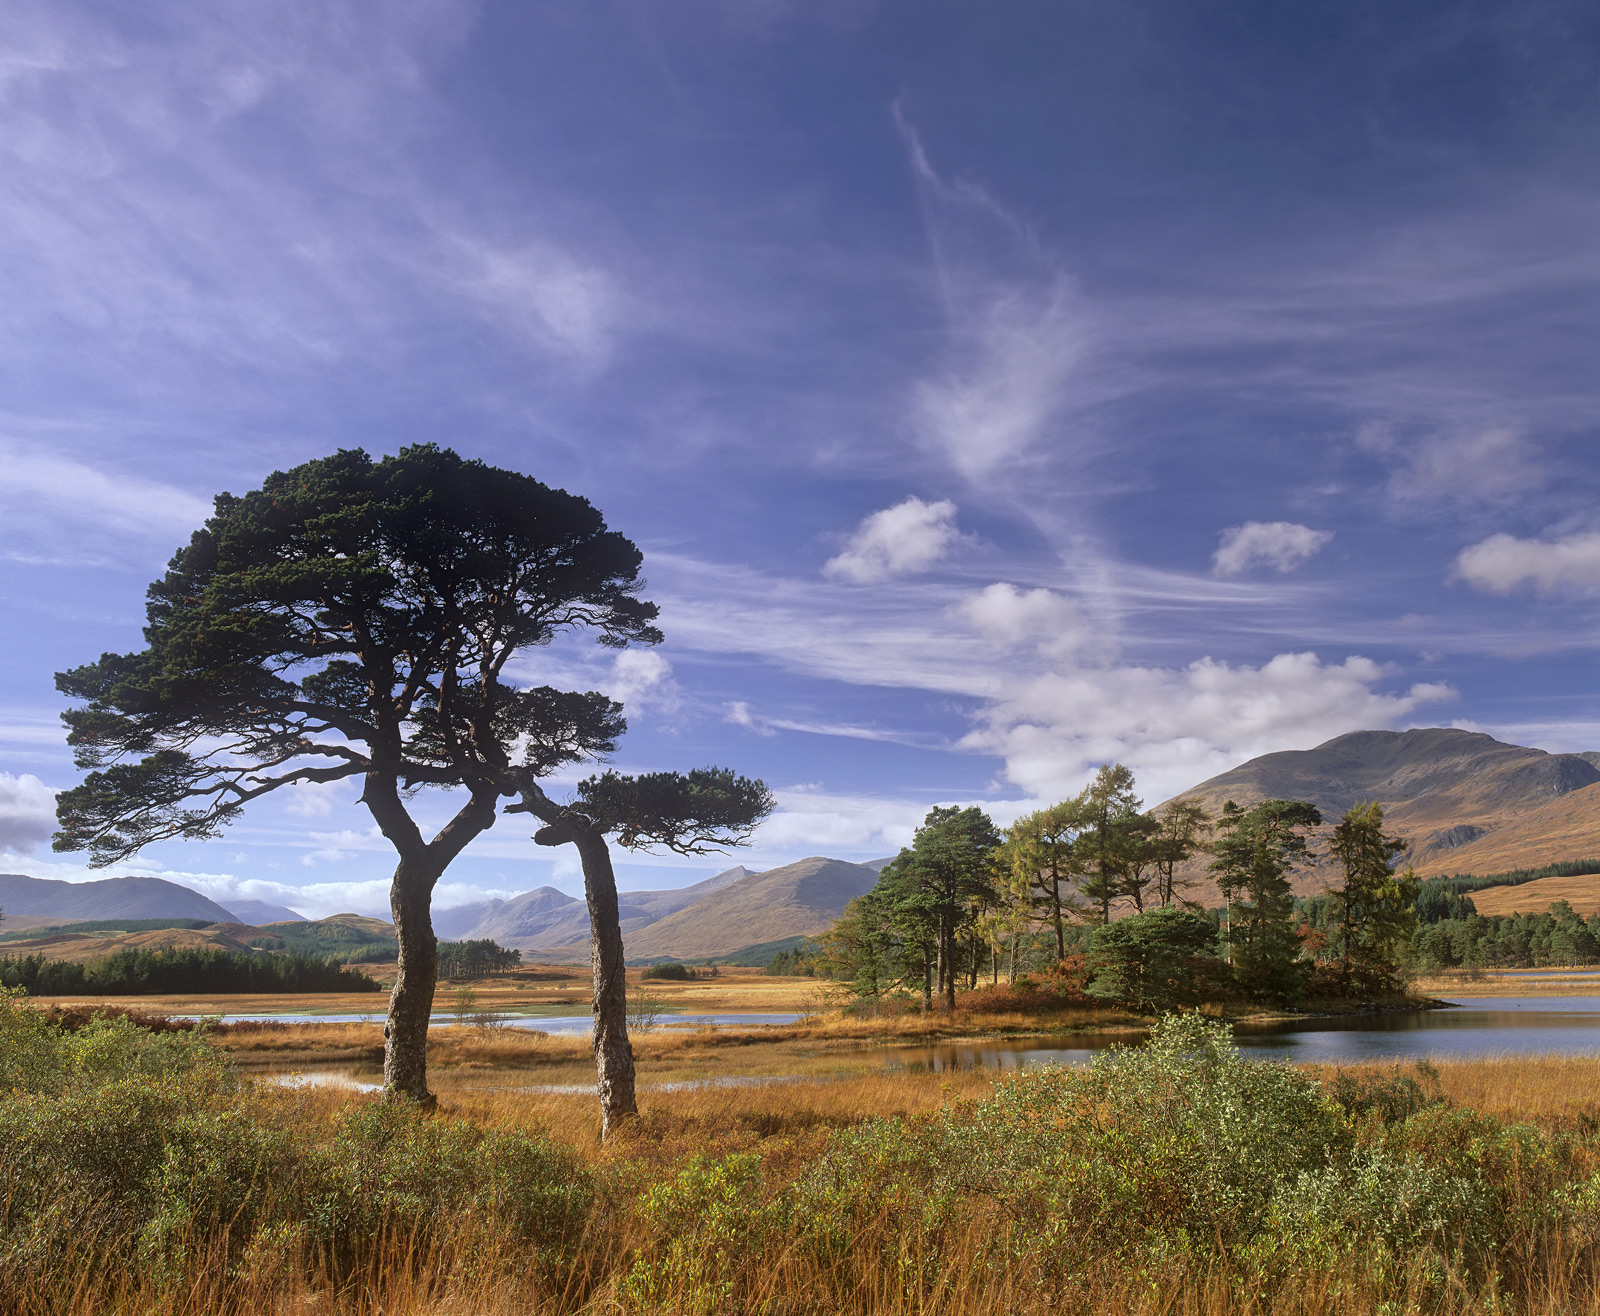 These two Scots Pines are quite literally bonded to each other, hence the title, they are quite inseperable and as a result must...